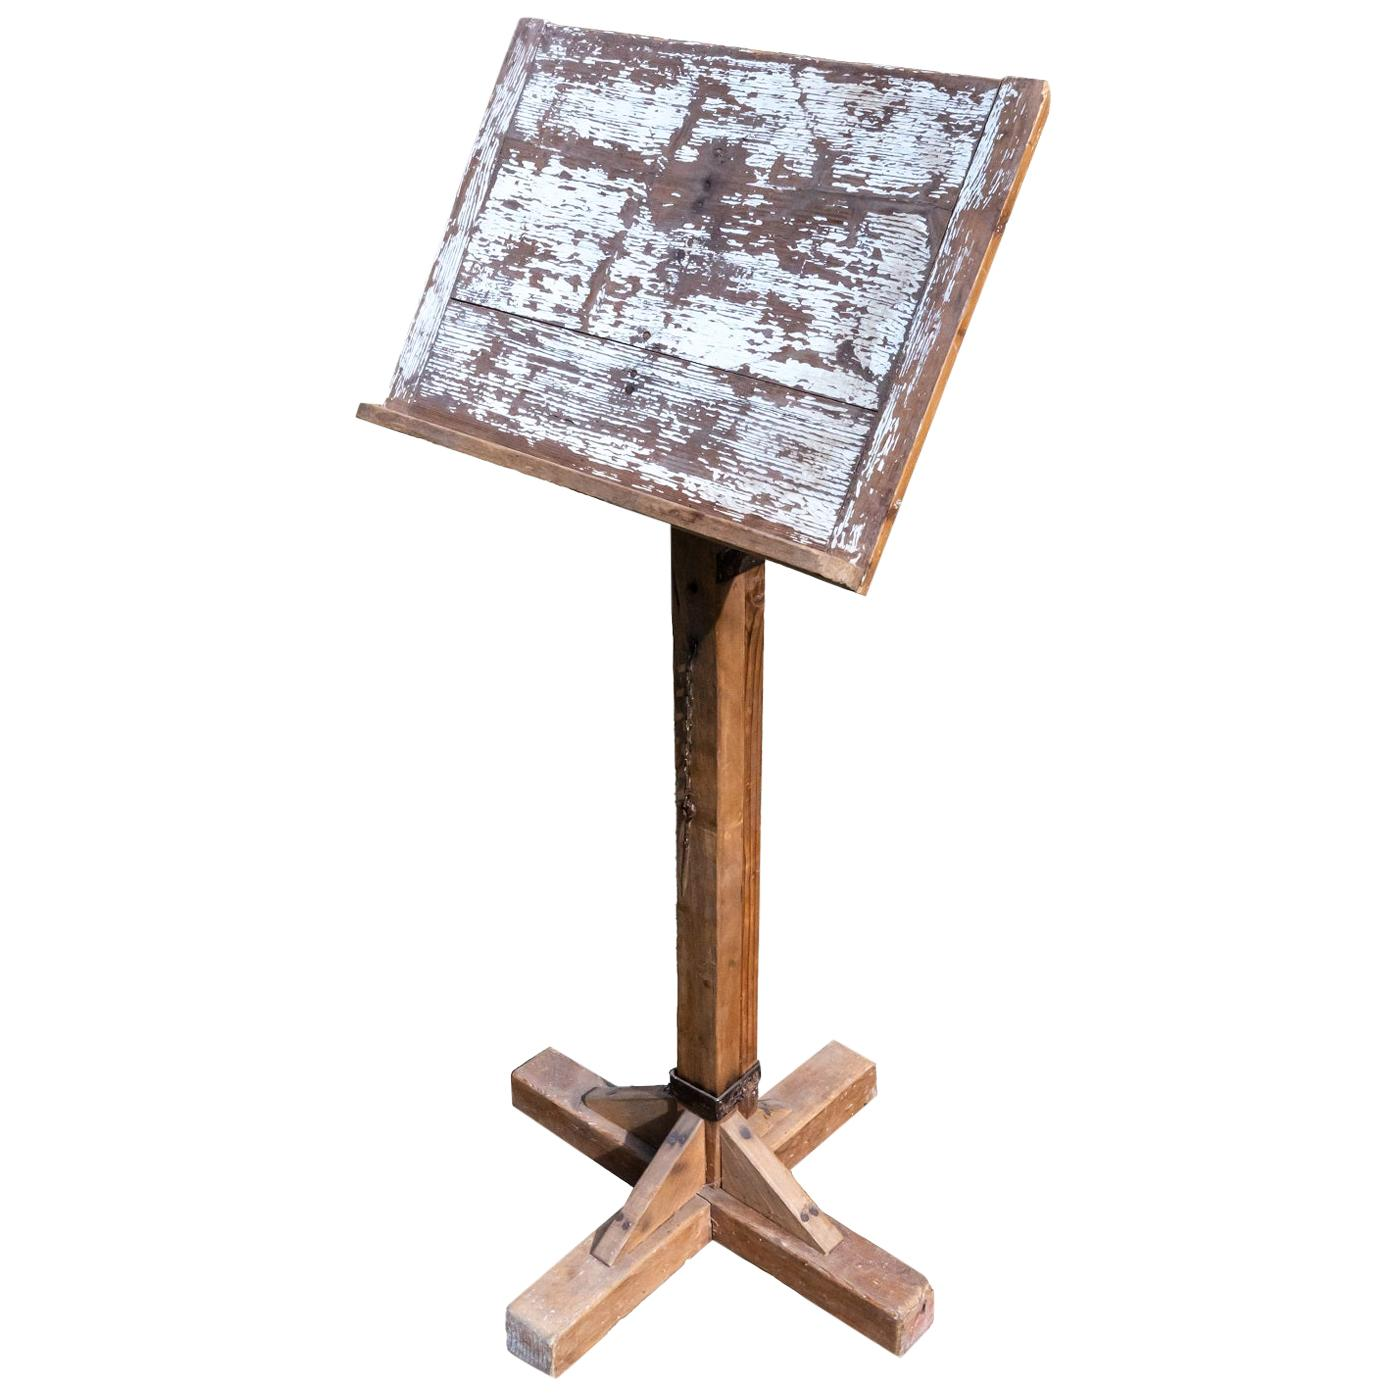 Antique Sheet Music Stand, France